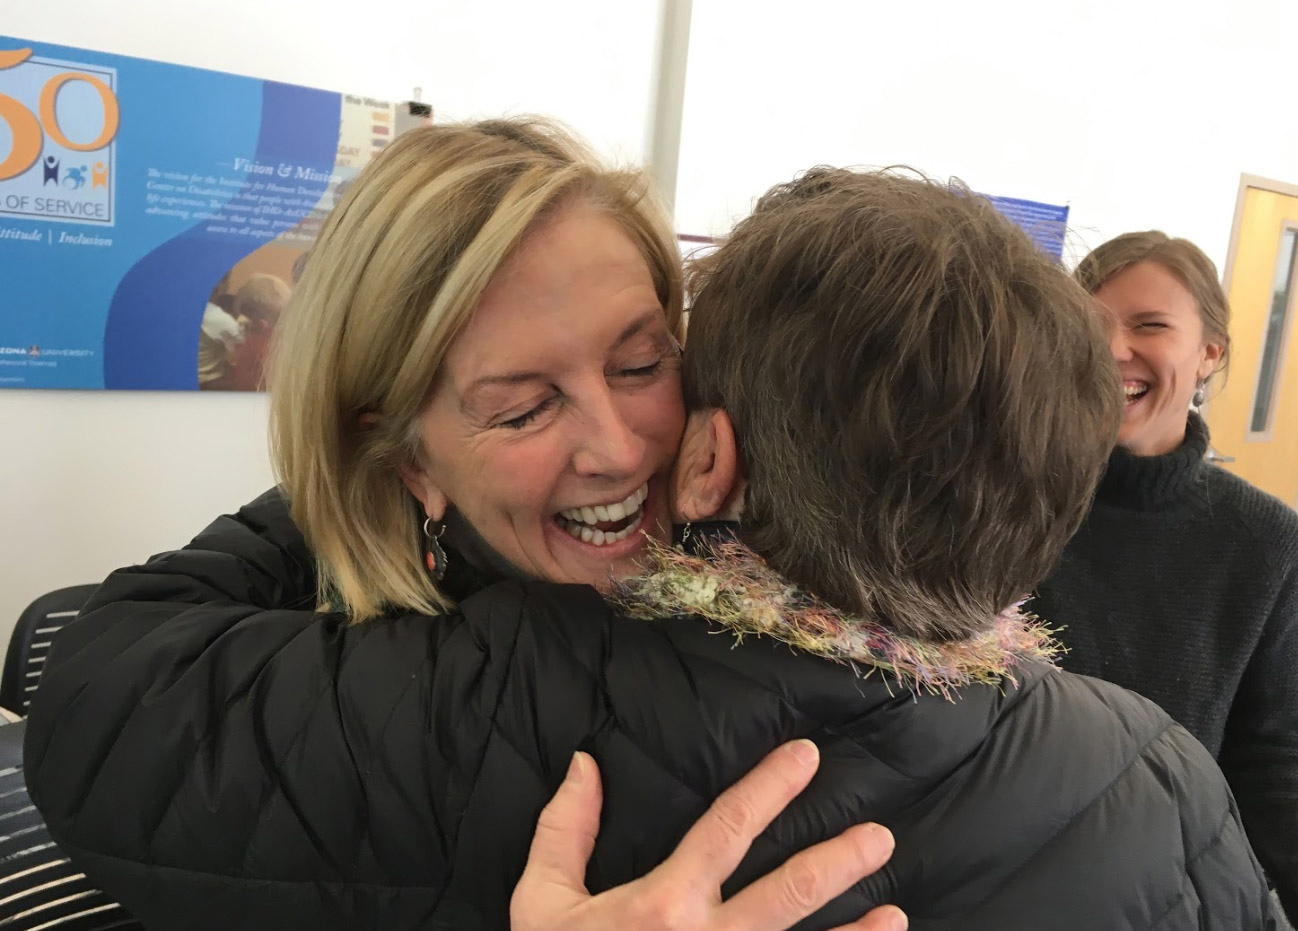 FacilitationWorkshopHug-2019b.jpg